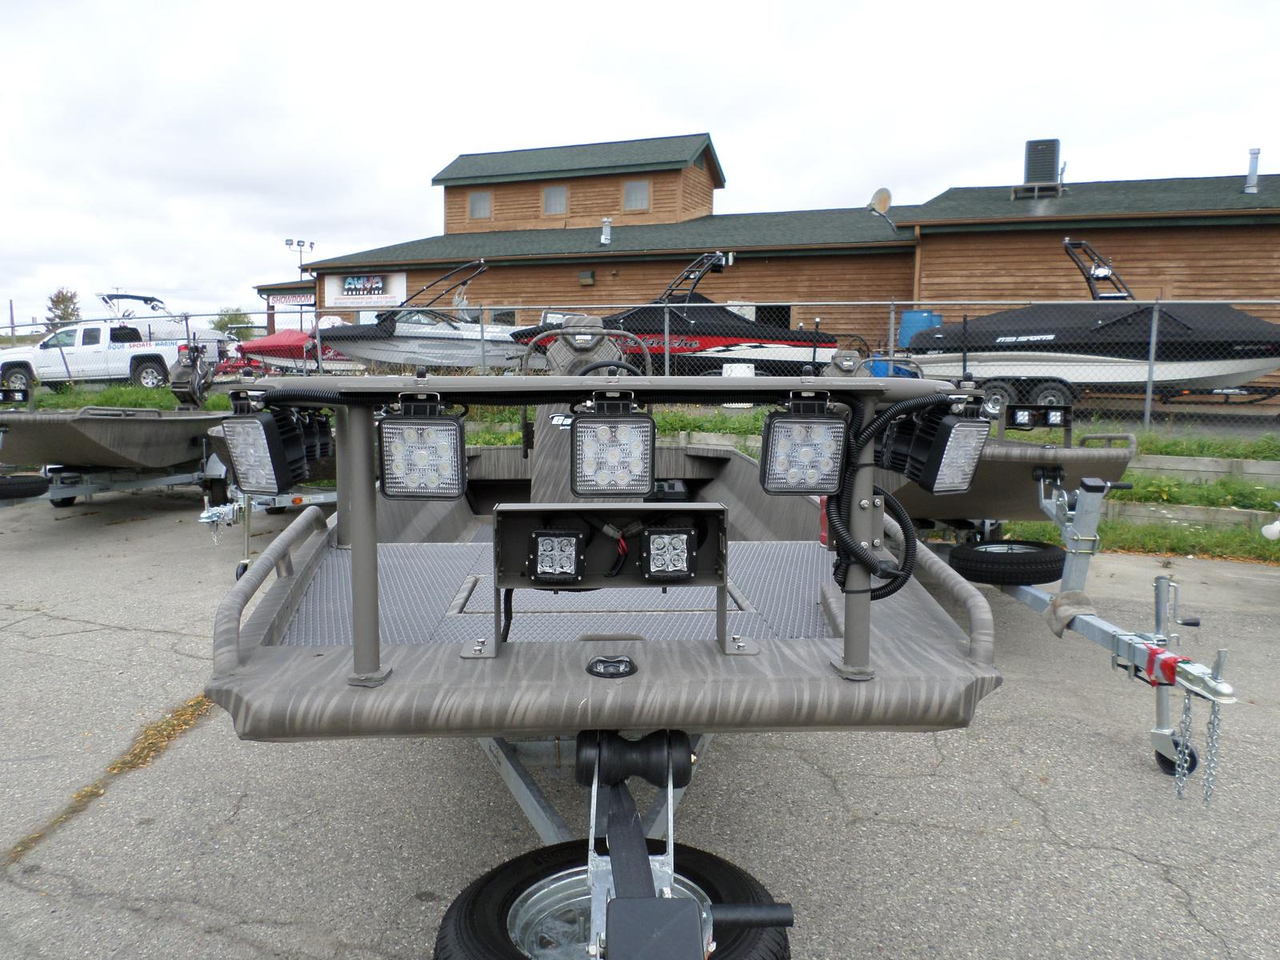 2016 new gator tail gtb1754 jon boat for sale 23 995 for Outboard motors for sale in michigan